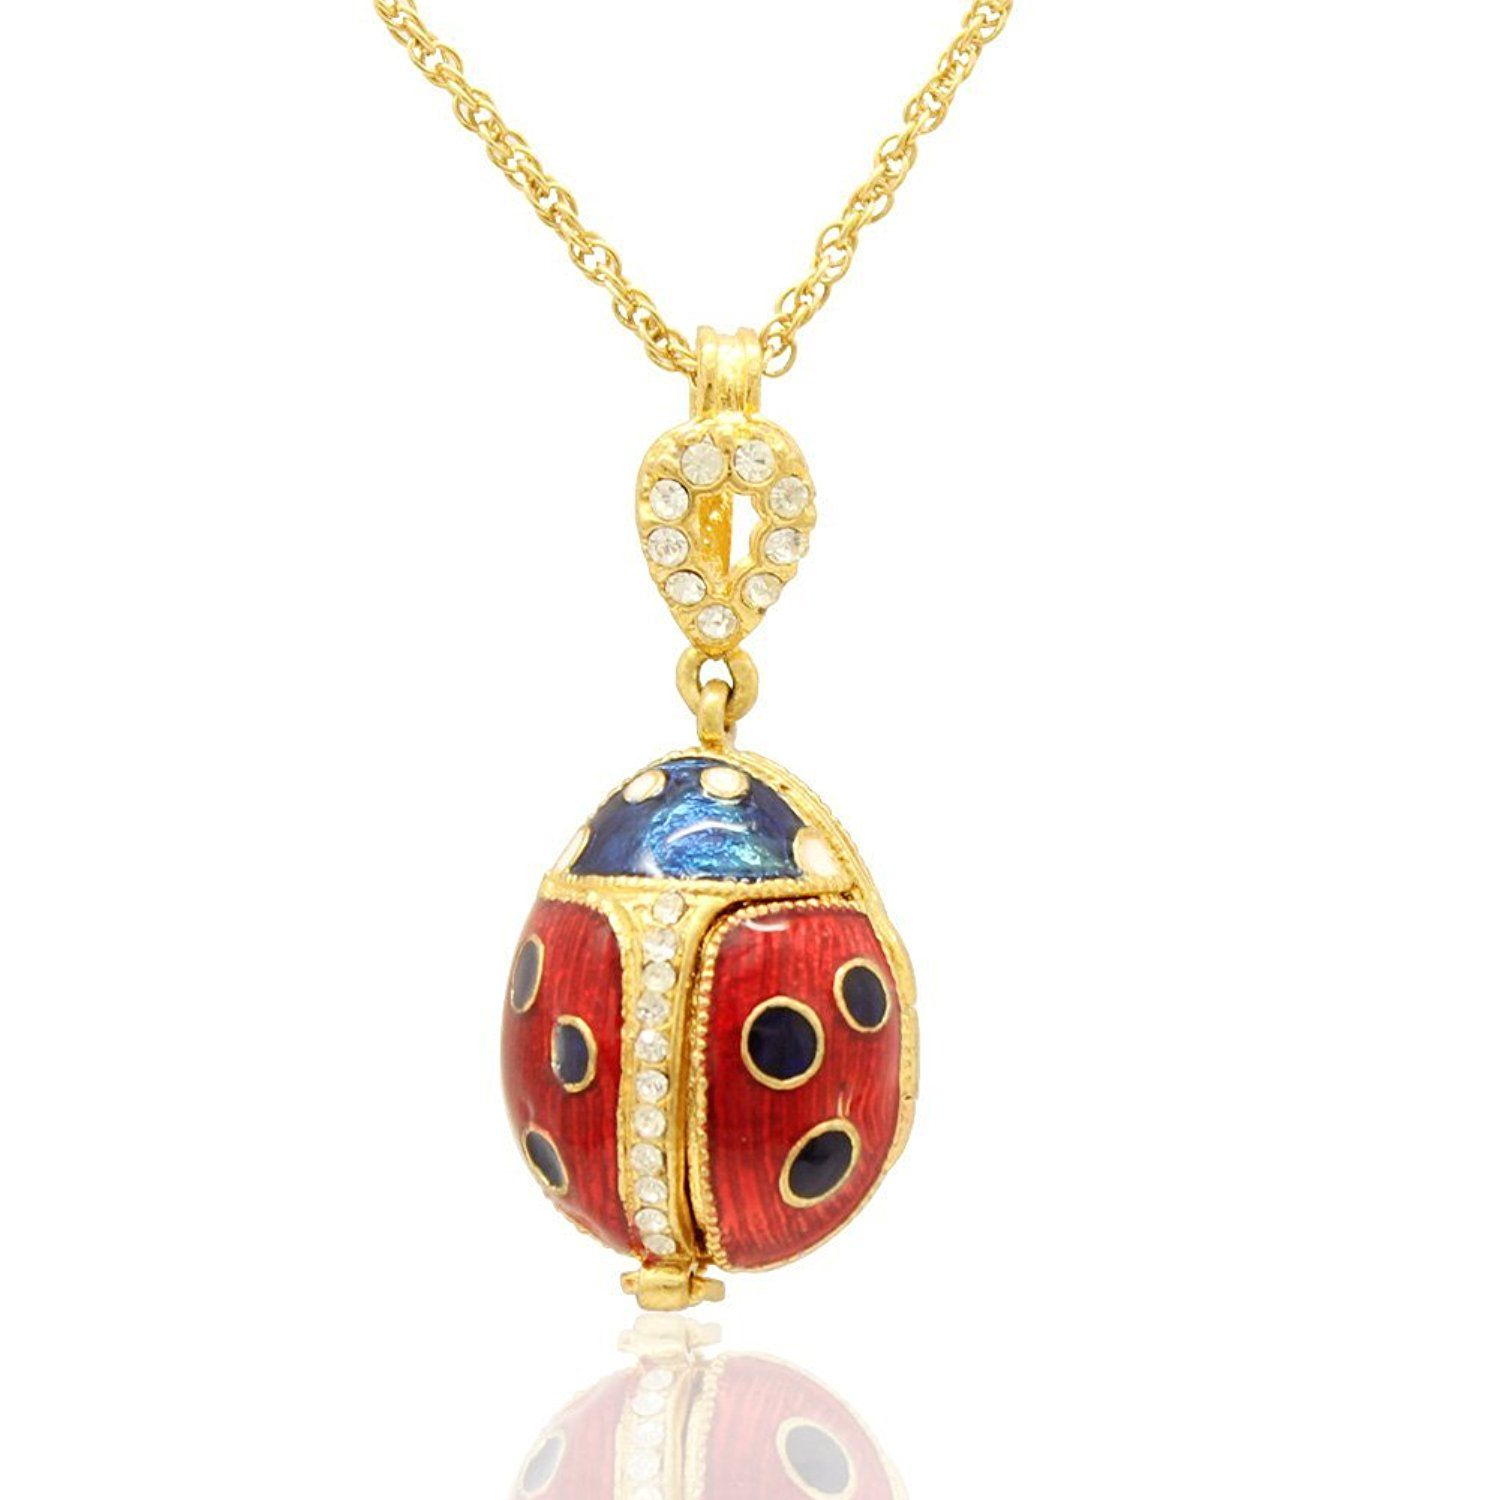 MYD Jewelry Ladybug Locket Easter Egg Faberge Egg Pendant Necklace